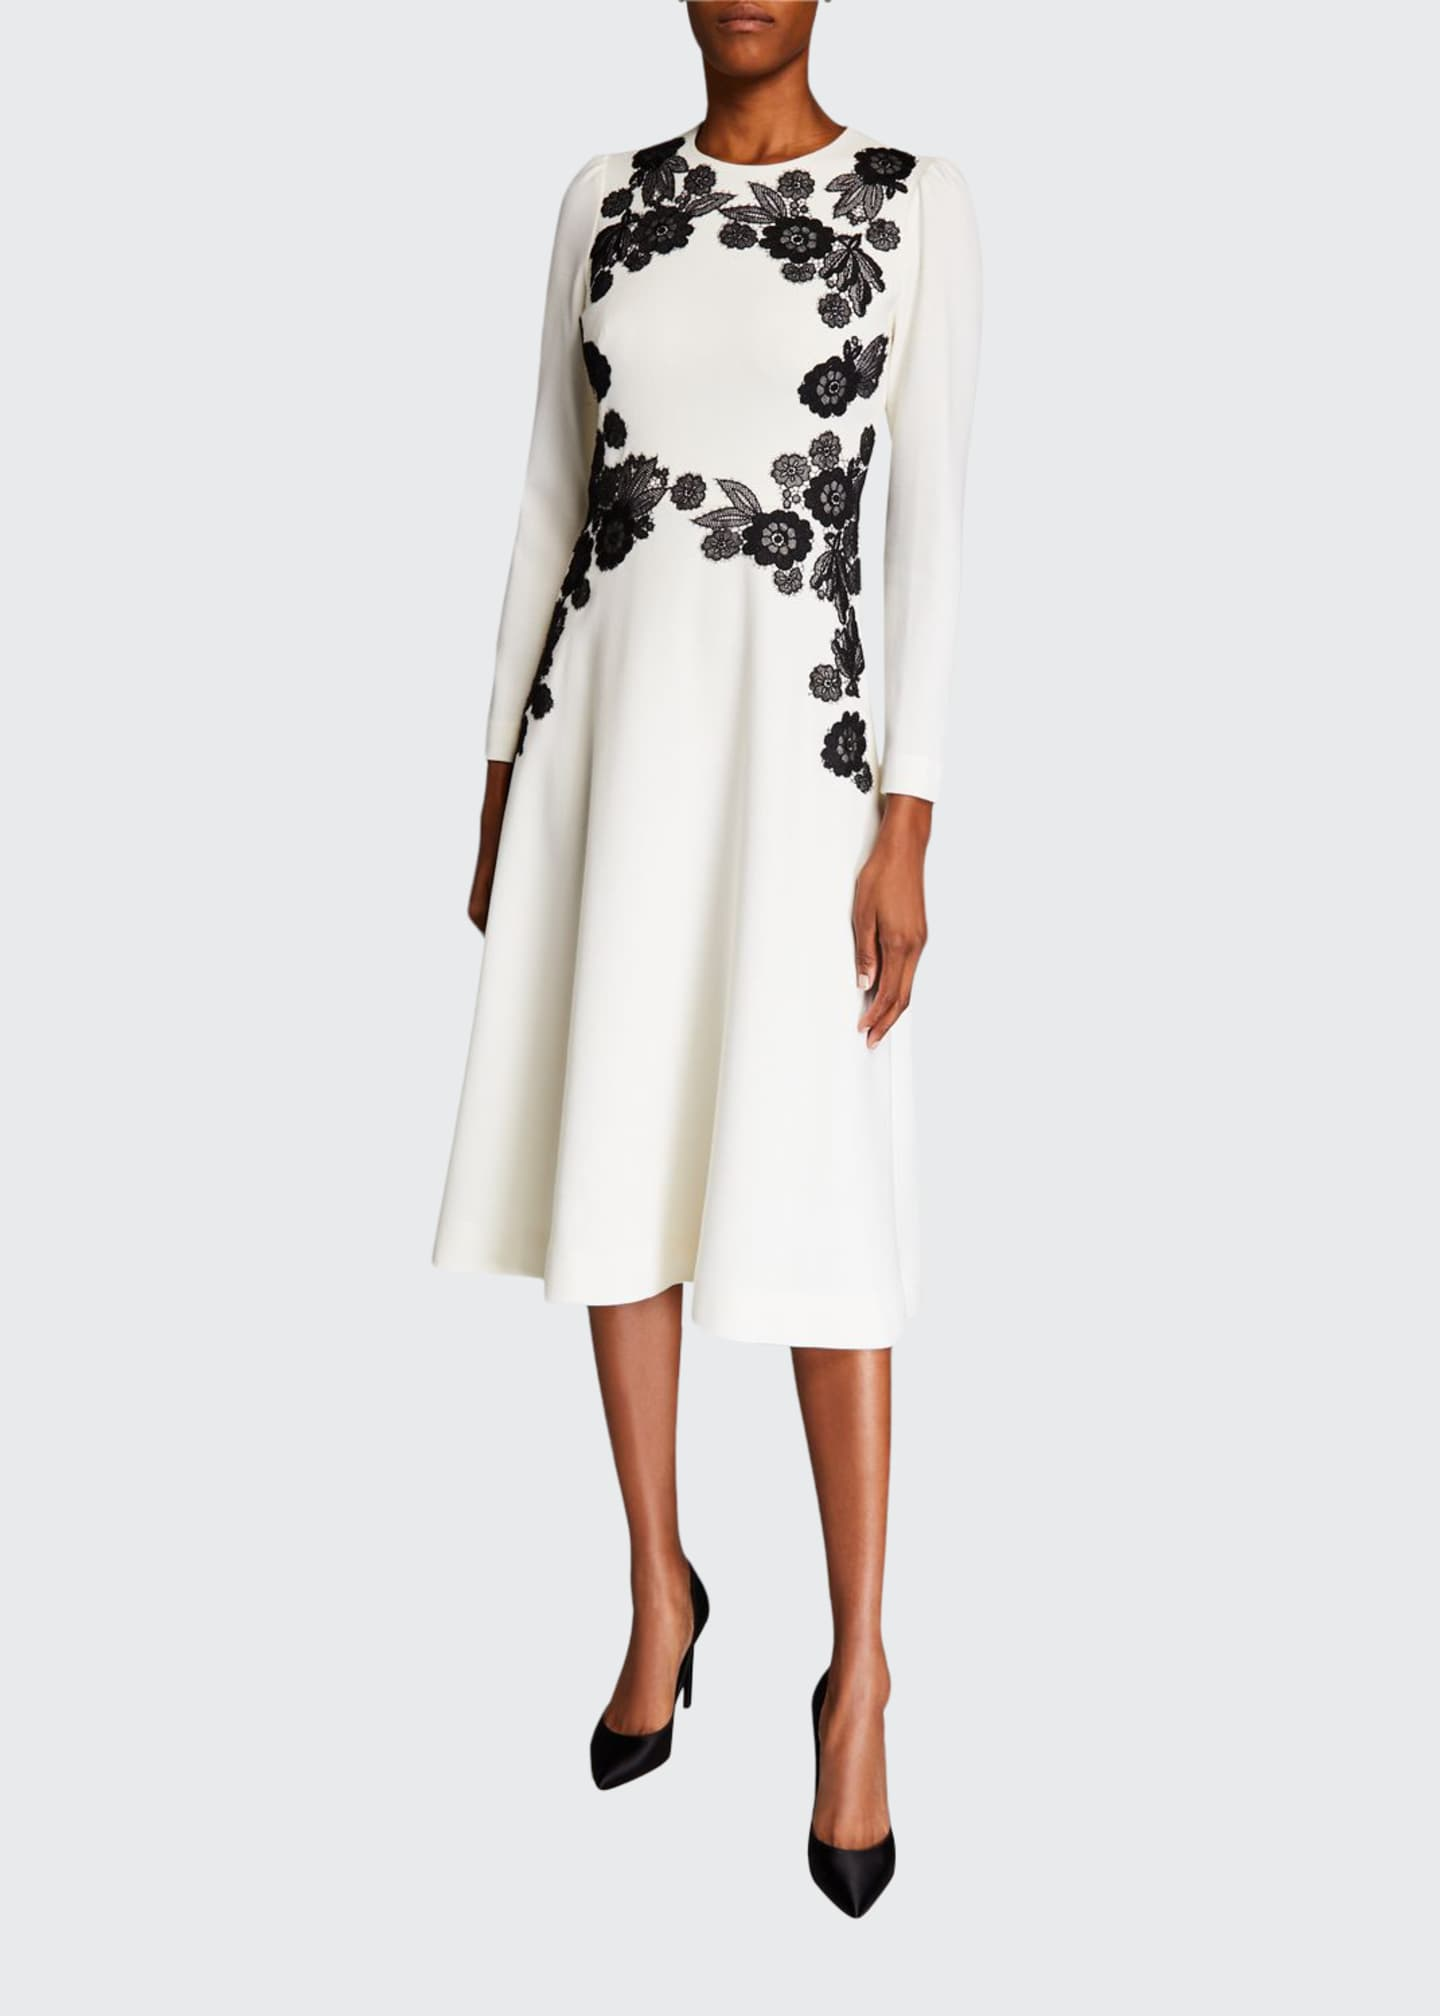 Lela Rose Lace Embroidered A Line Dress